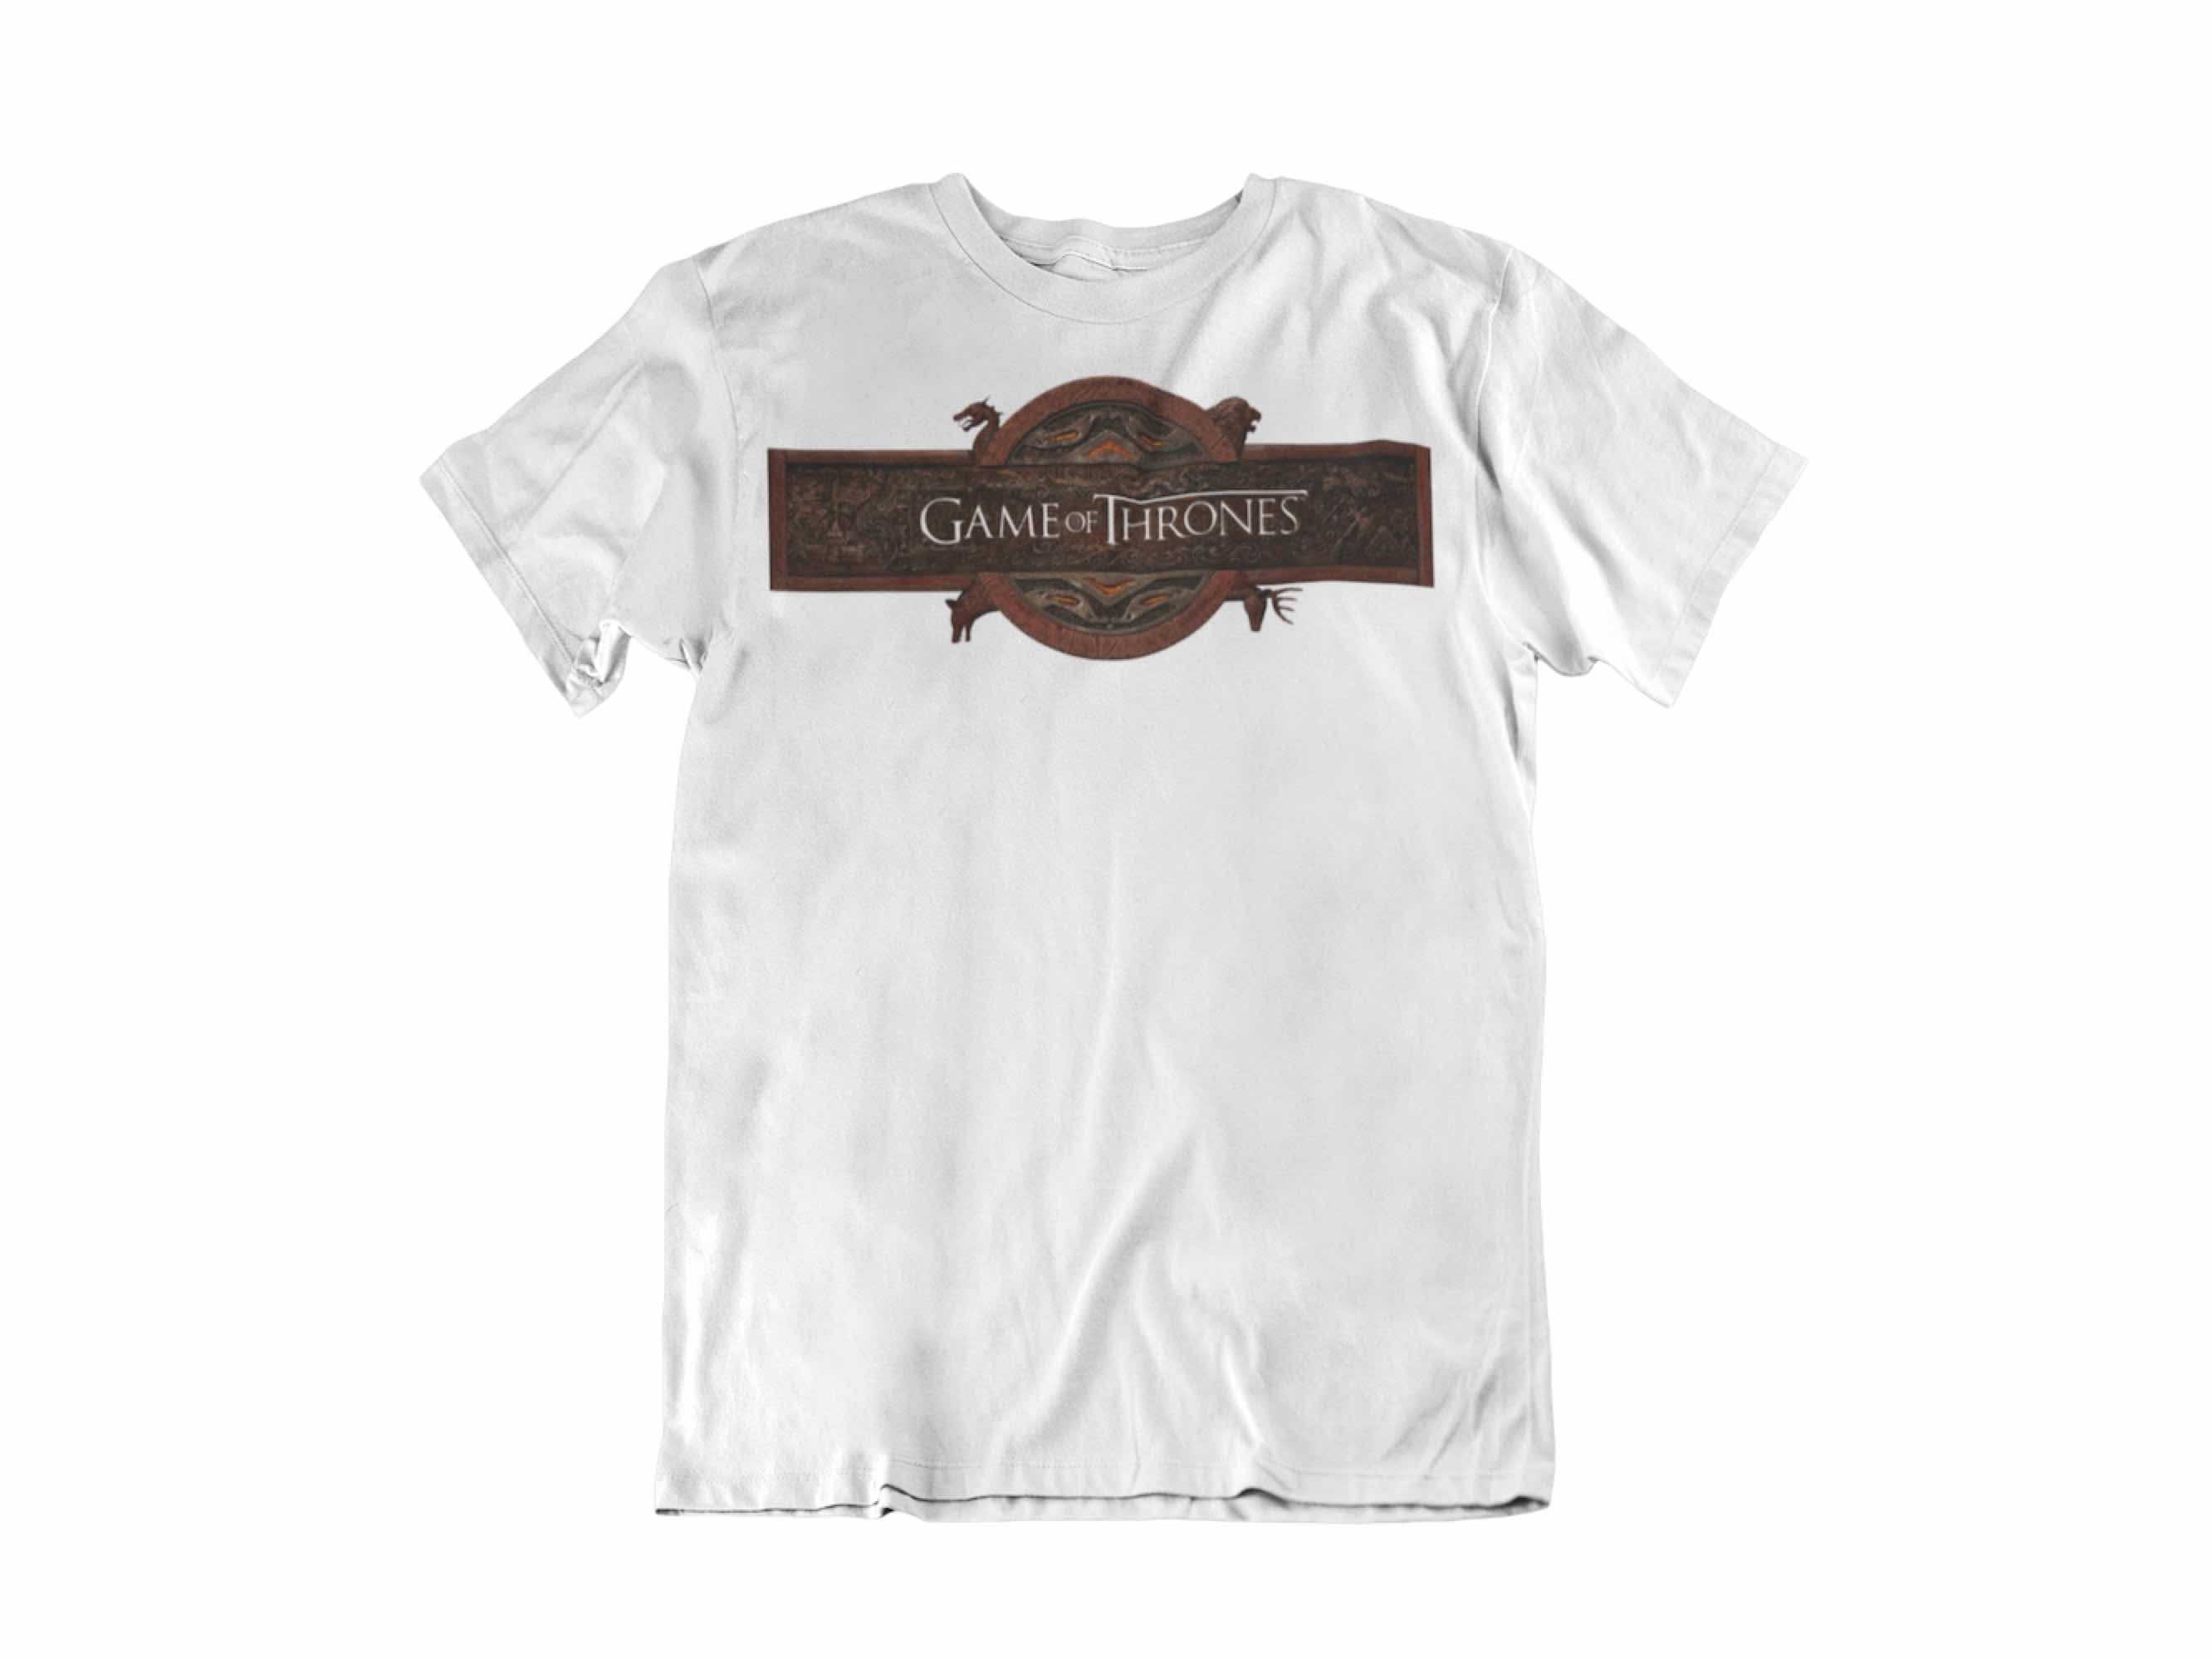 CAMISETA LOGO GAME OF THRONES INTRO DE LA SERIE UNISEX TALLA S